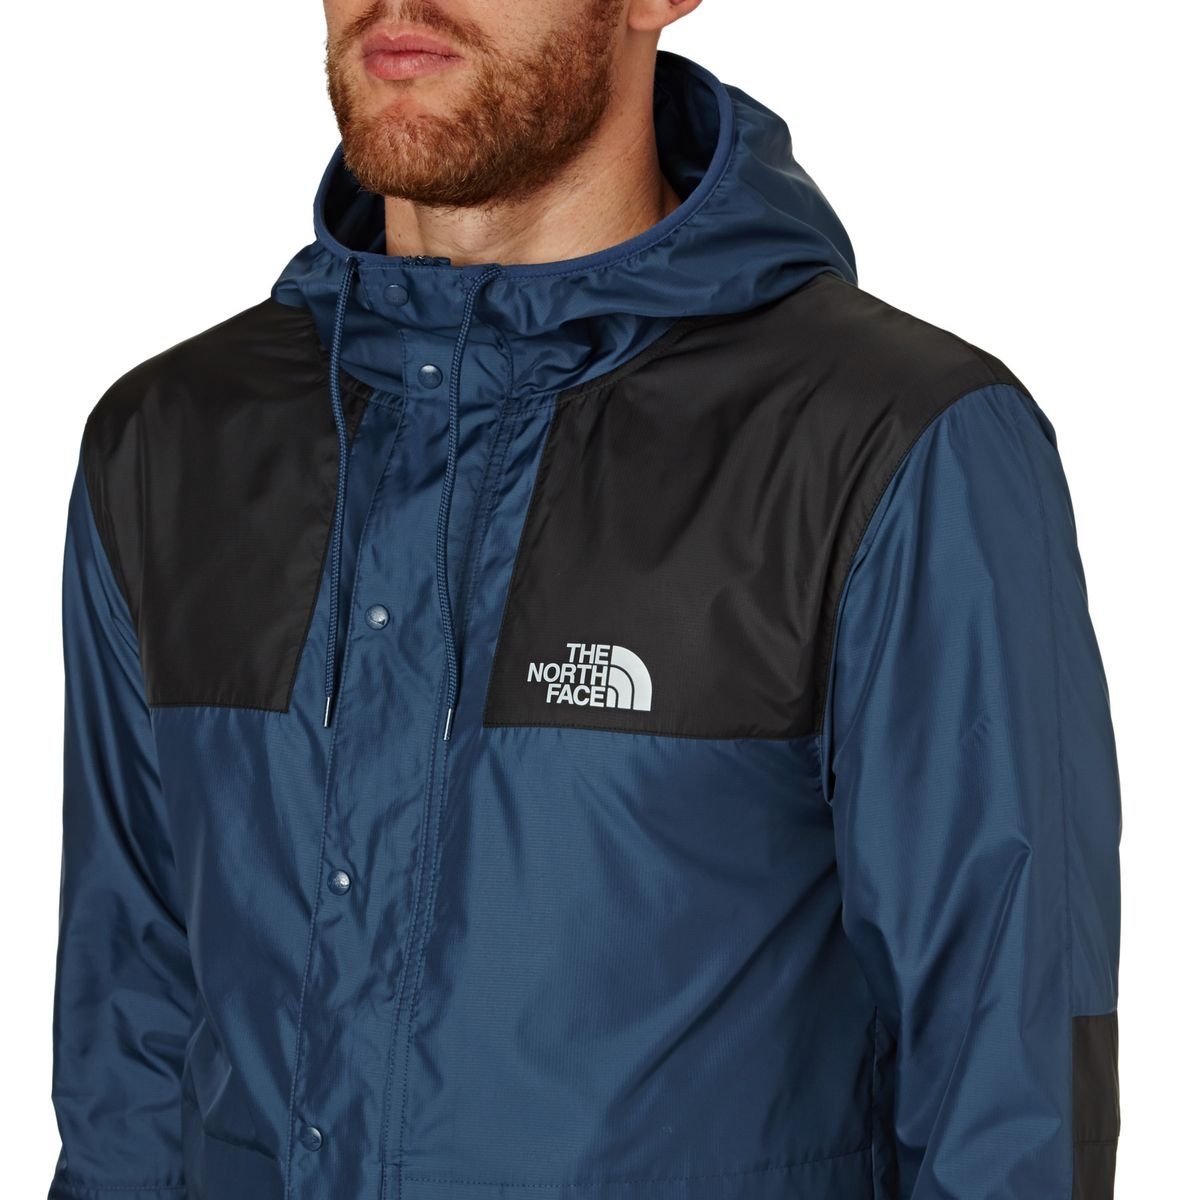 THE NORTH FACE Men s Jacke 1985 Mountain Jacket Seasonal Celebration   Amazon.co.uk  Sports   Outdoors f8eee188b